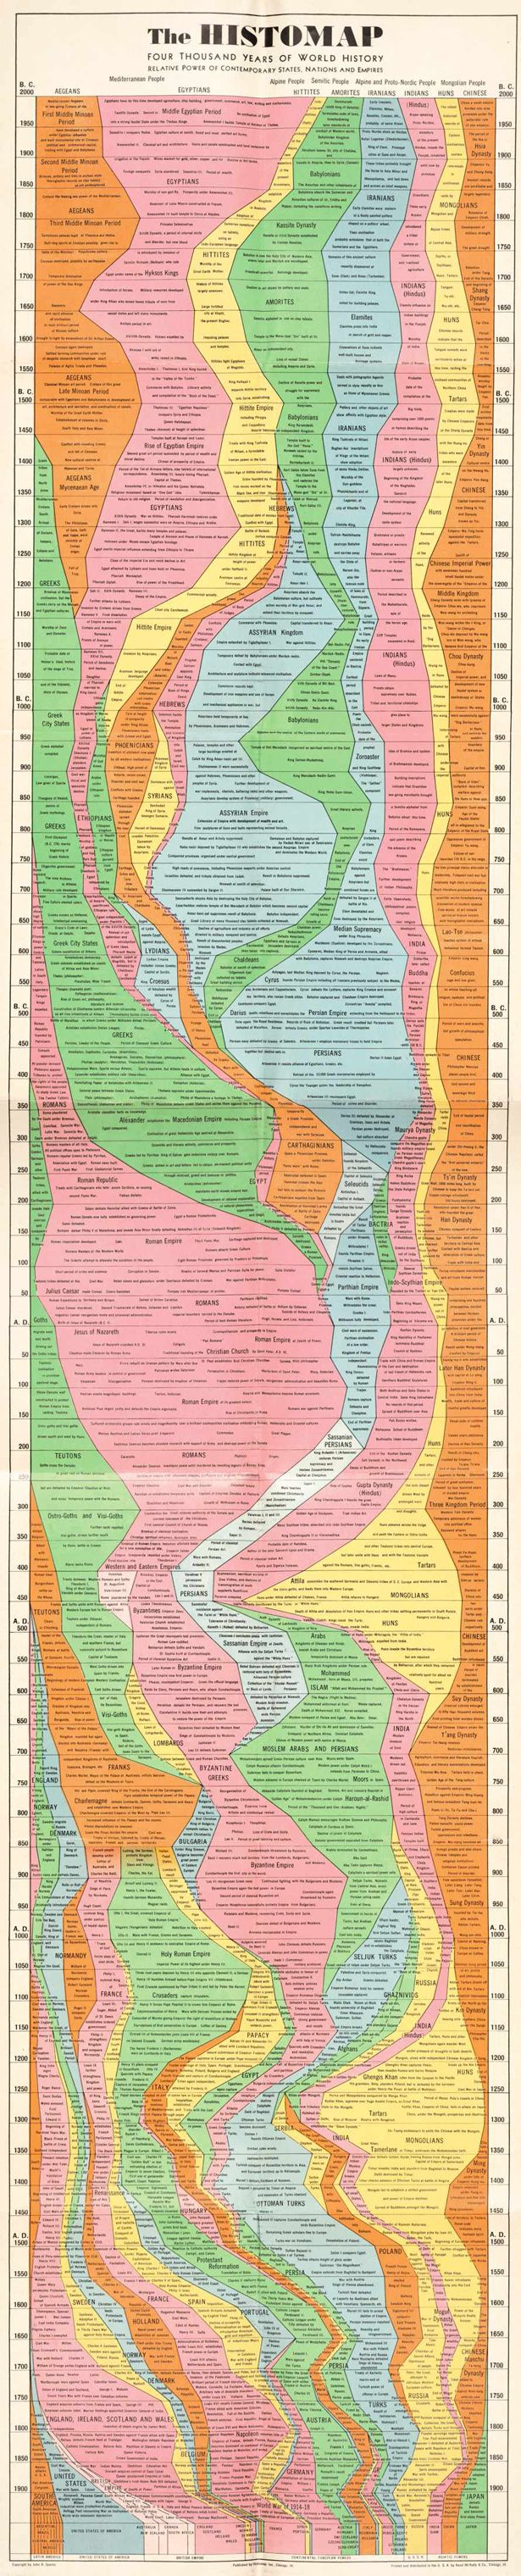 The Histomap... 4,000 years of world history